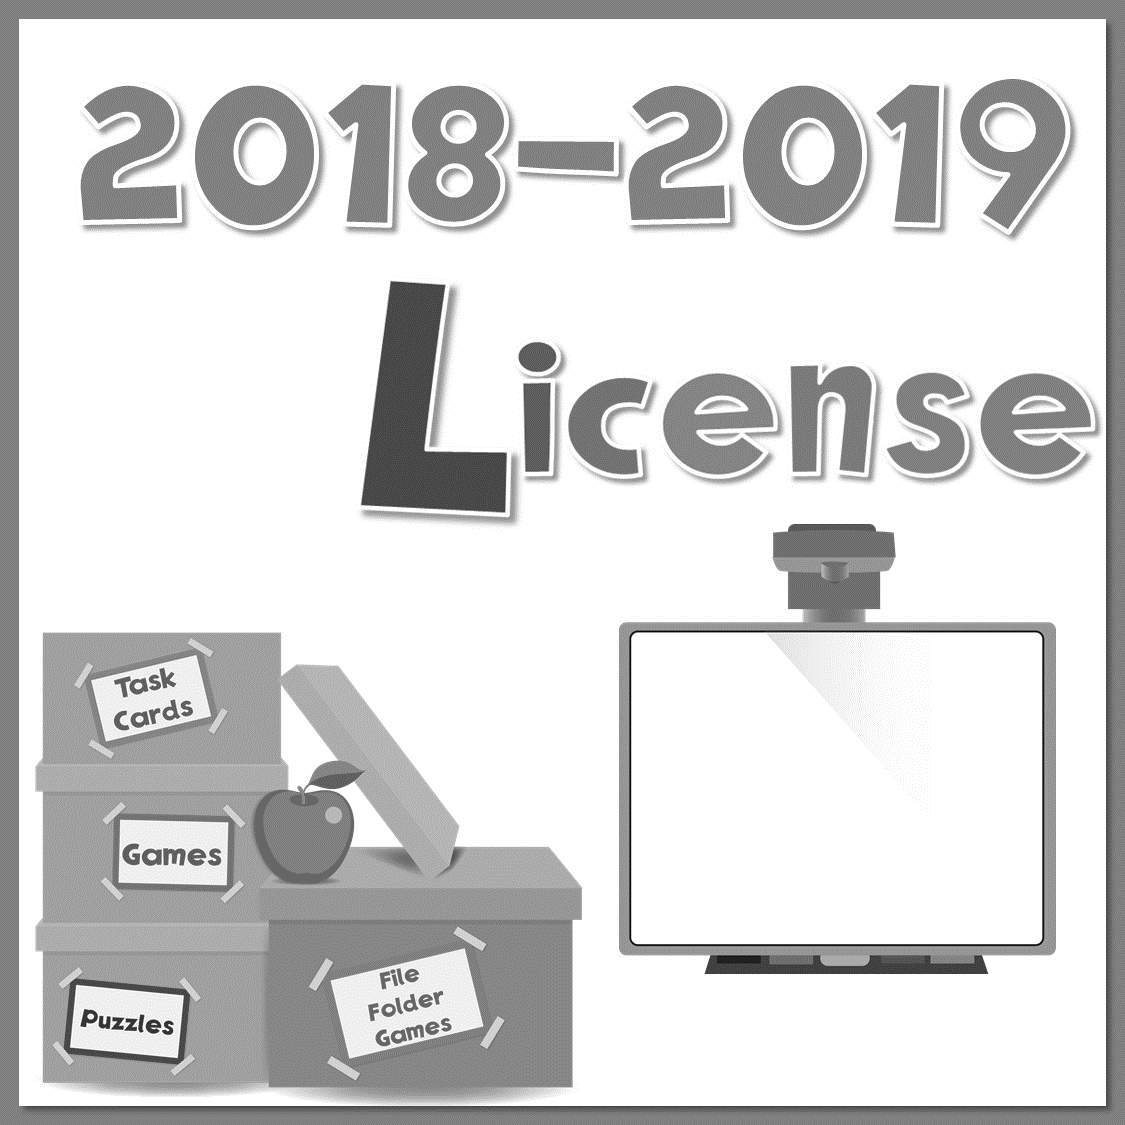 2018-2019 Yearly License